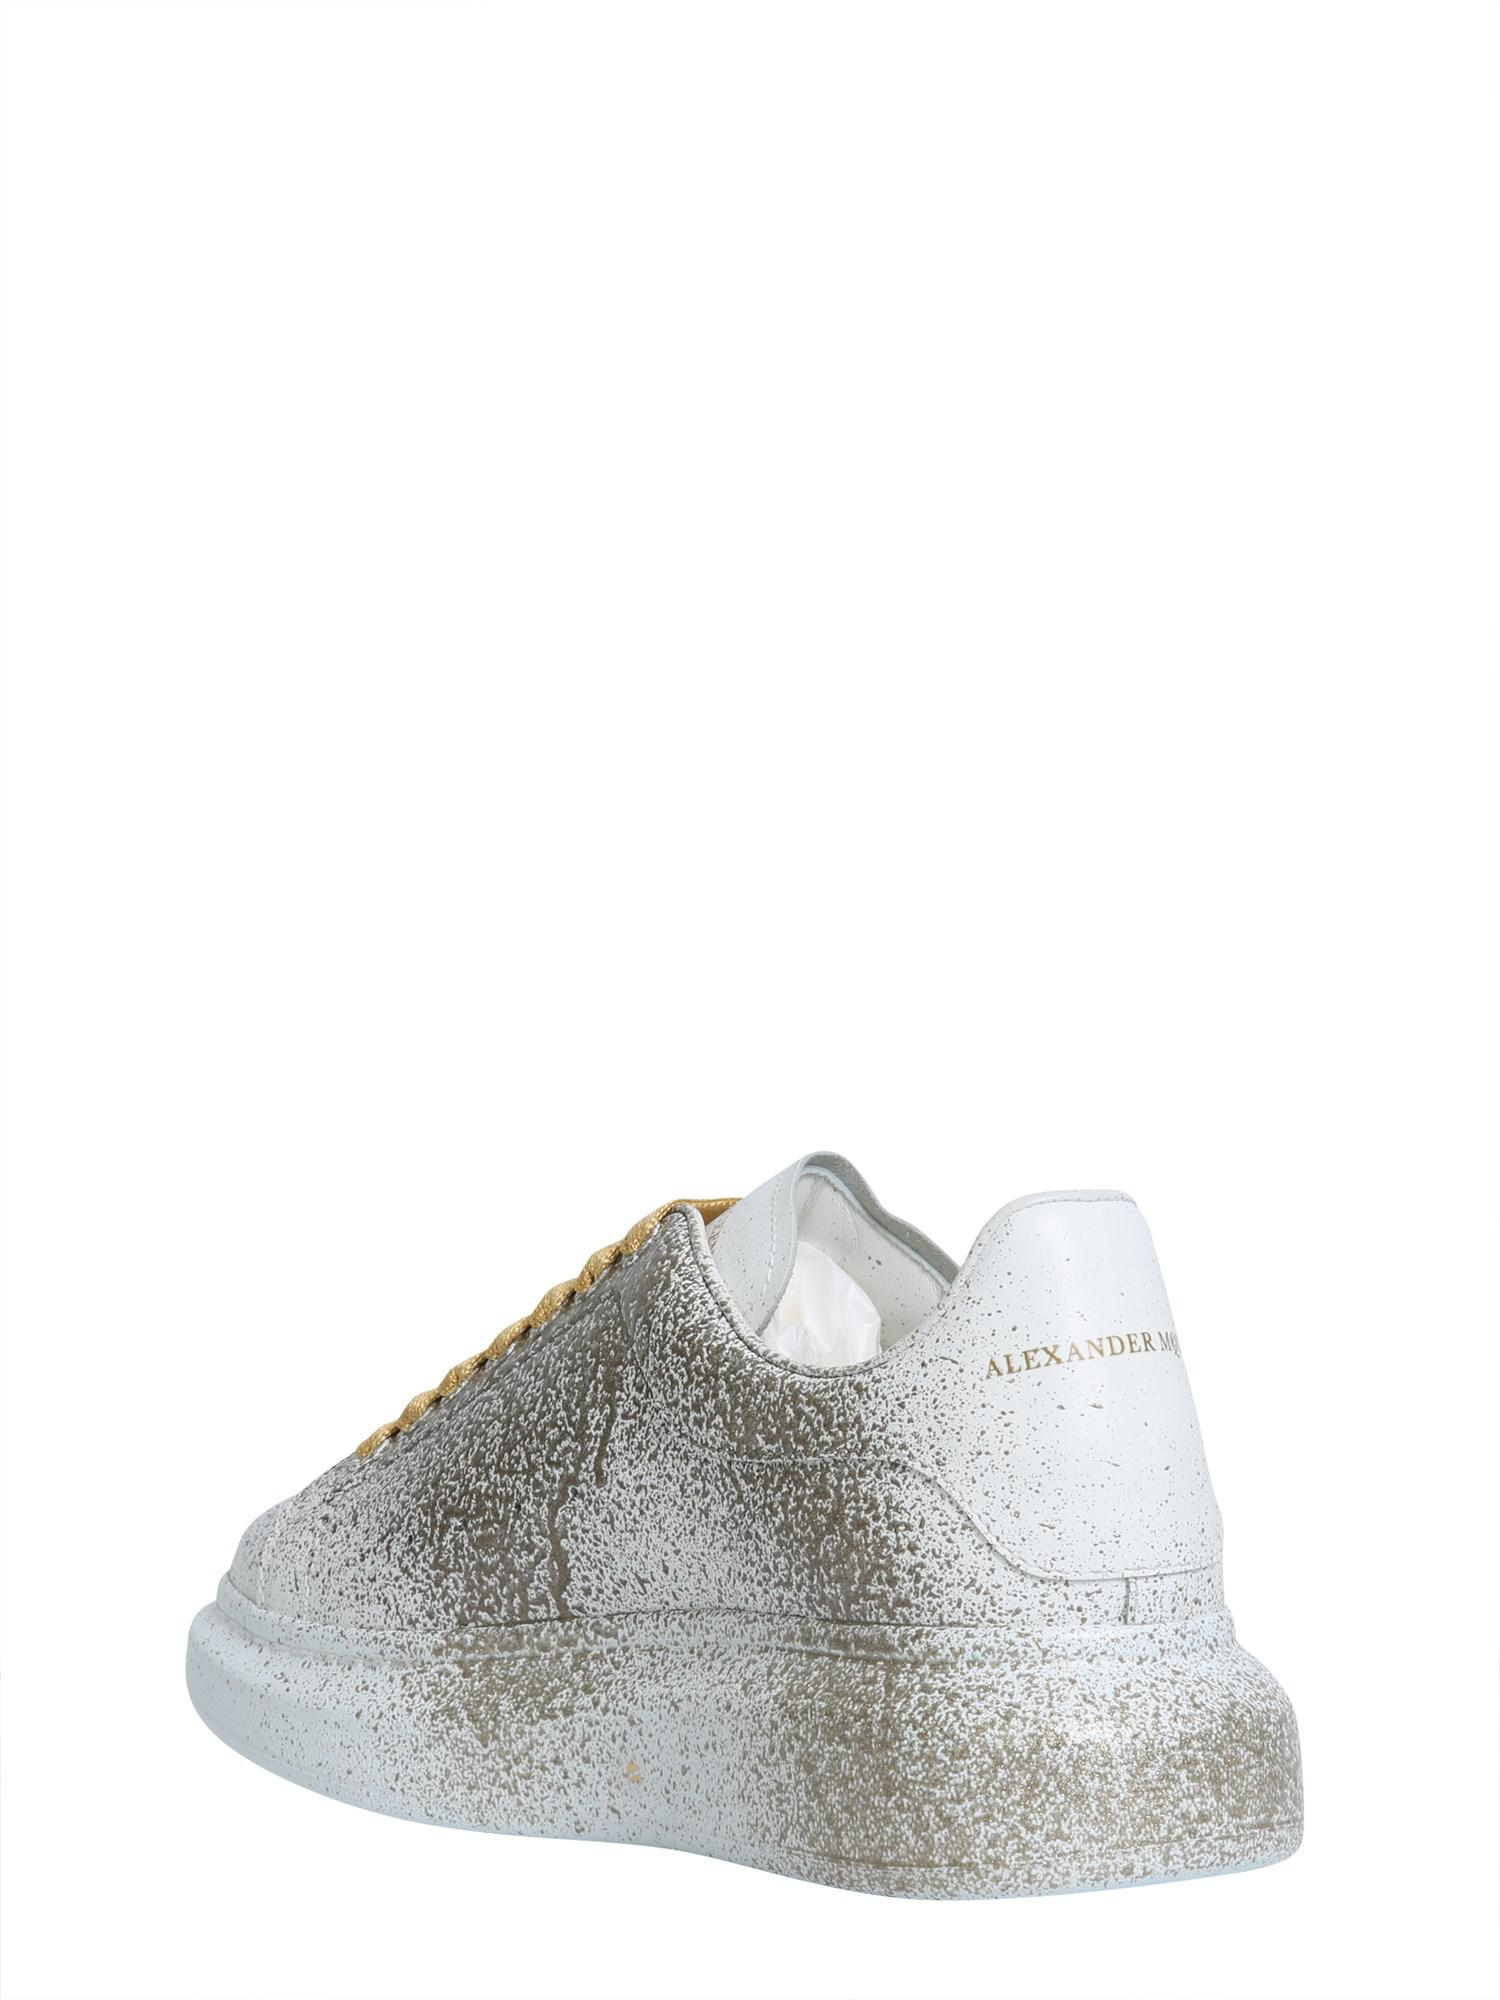 39ad54b153 Lyst - Alexander McQueen Hand-spray Painted In Gold Oversize ...